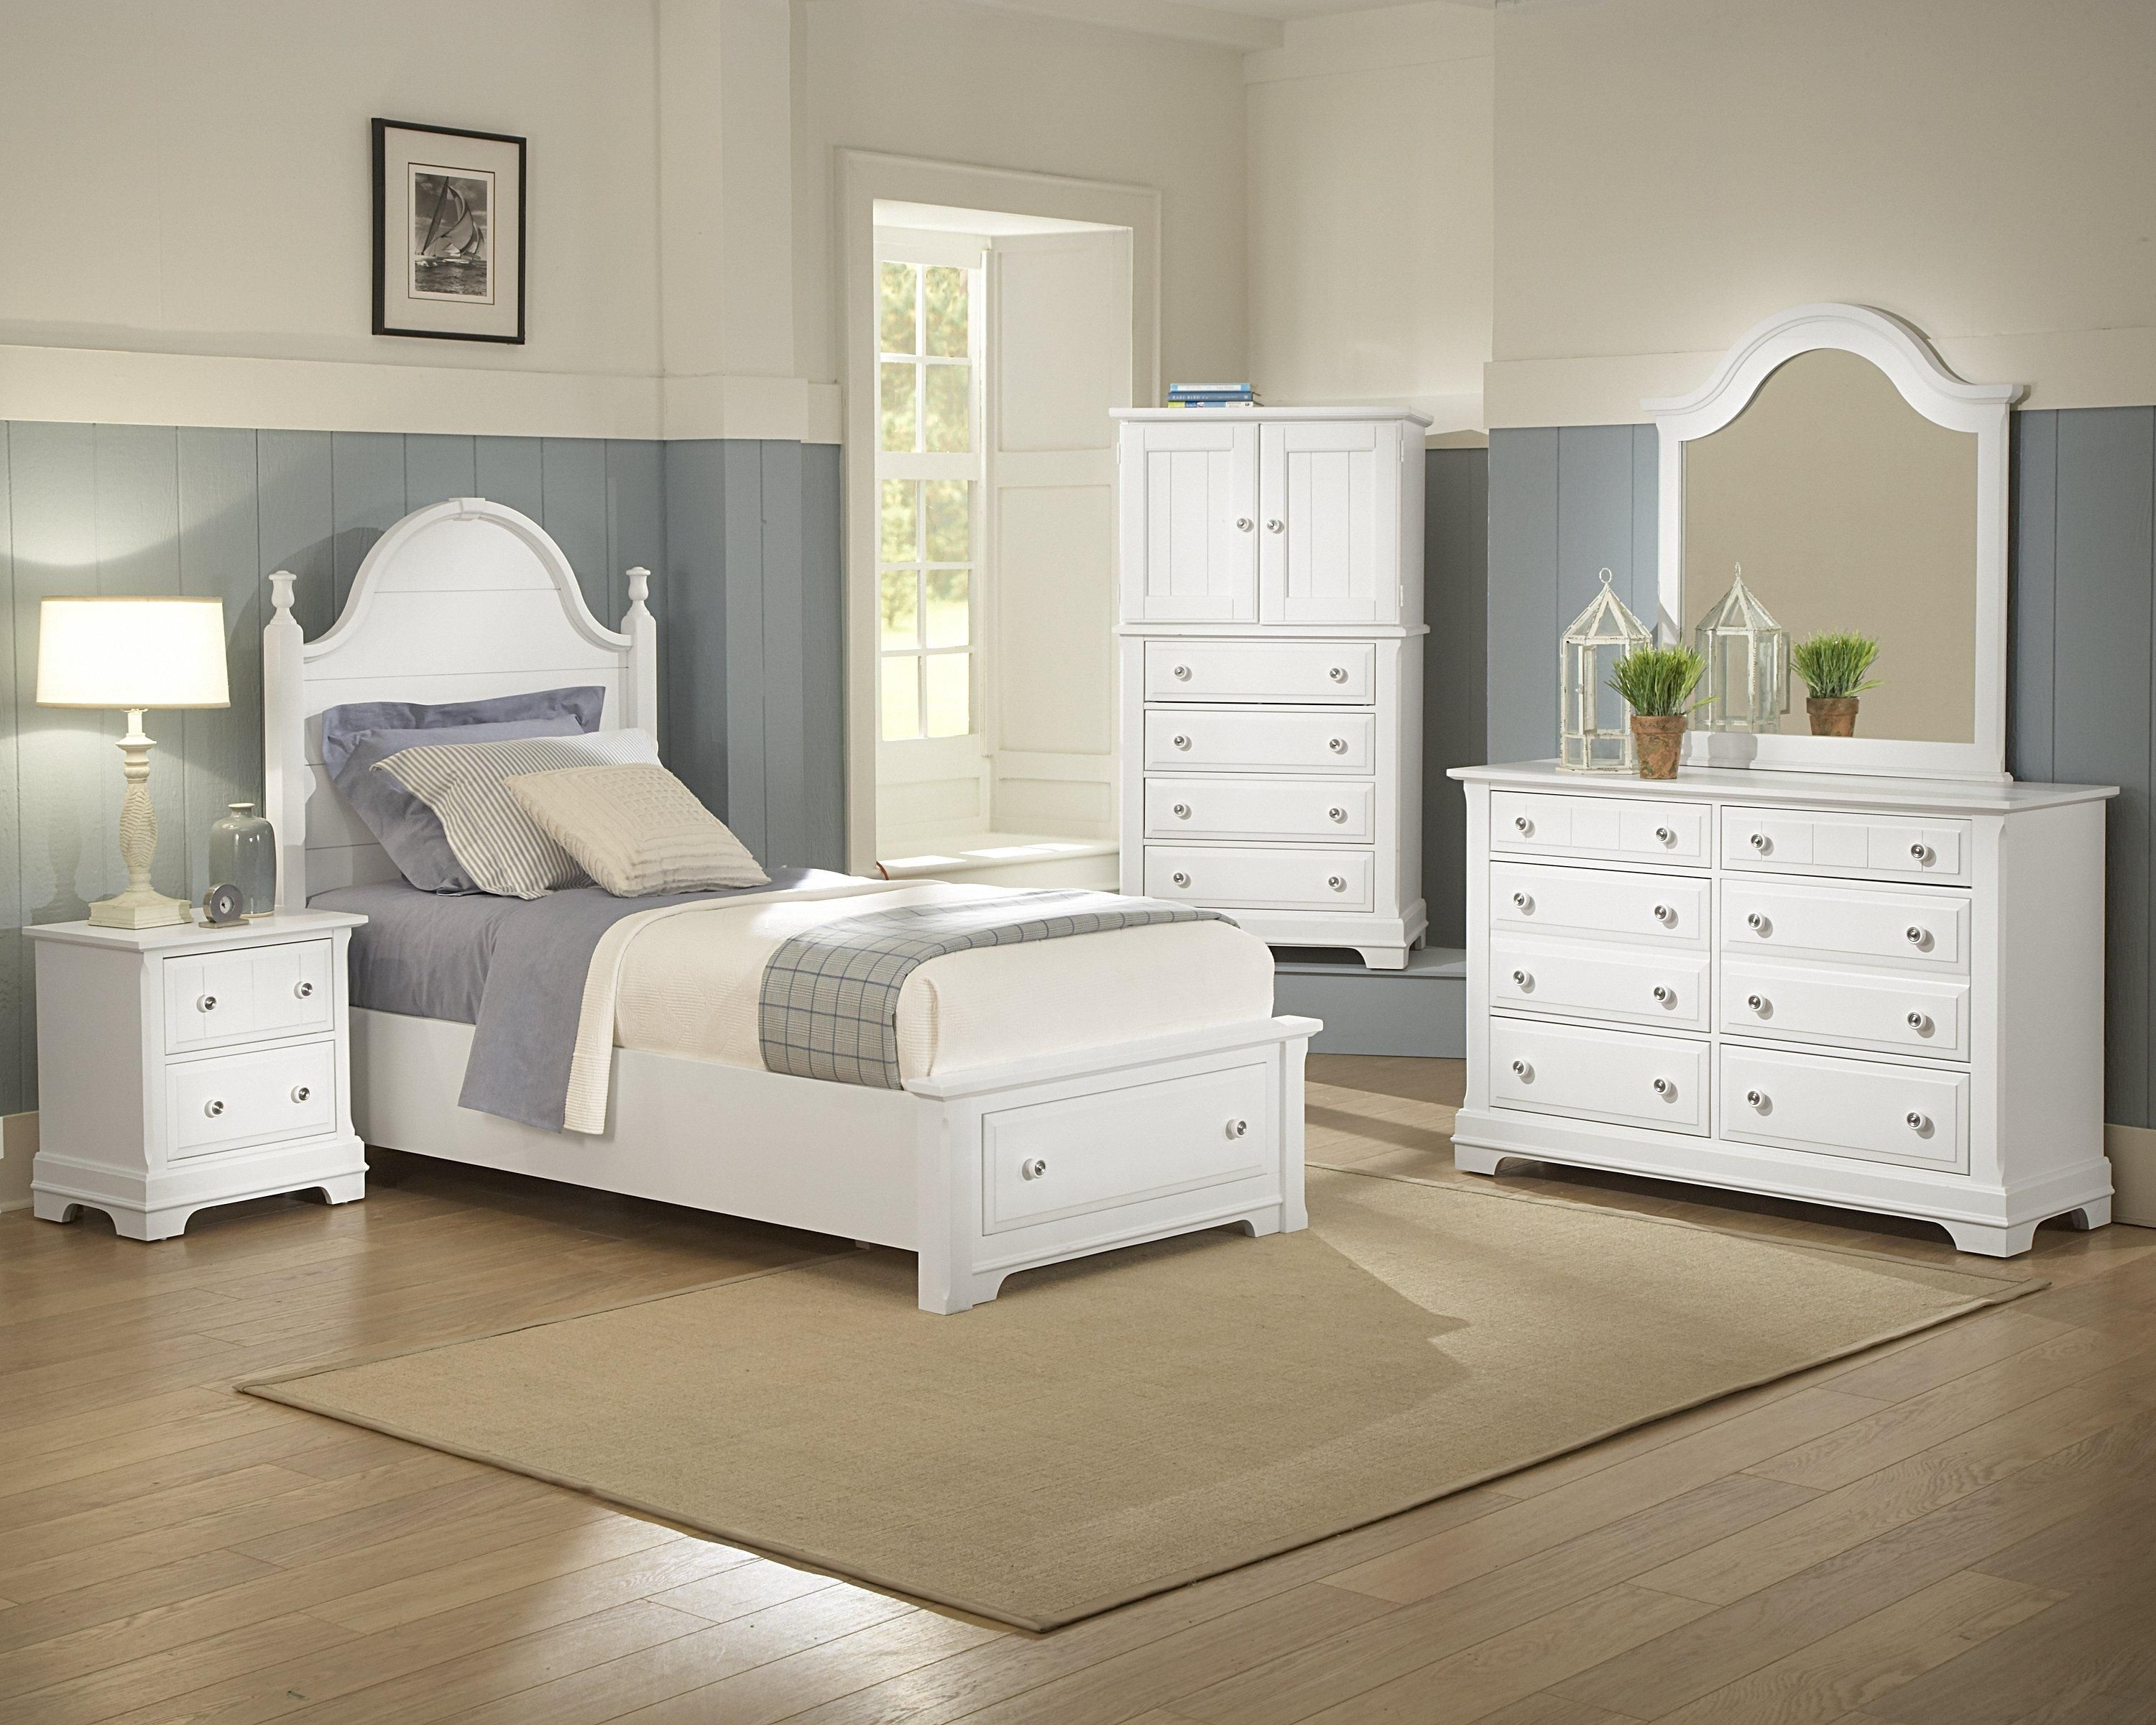 Vaughn bassett furniture cottage collection featuring - White bedroom furniture for girl ...